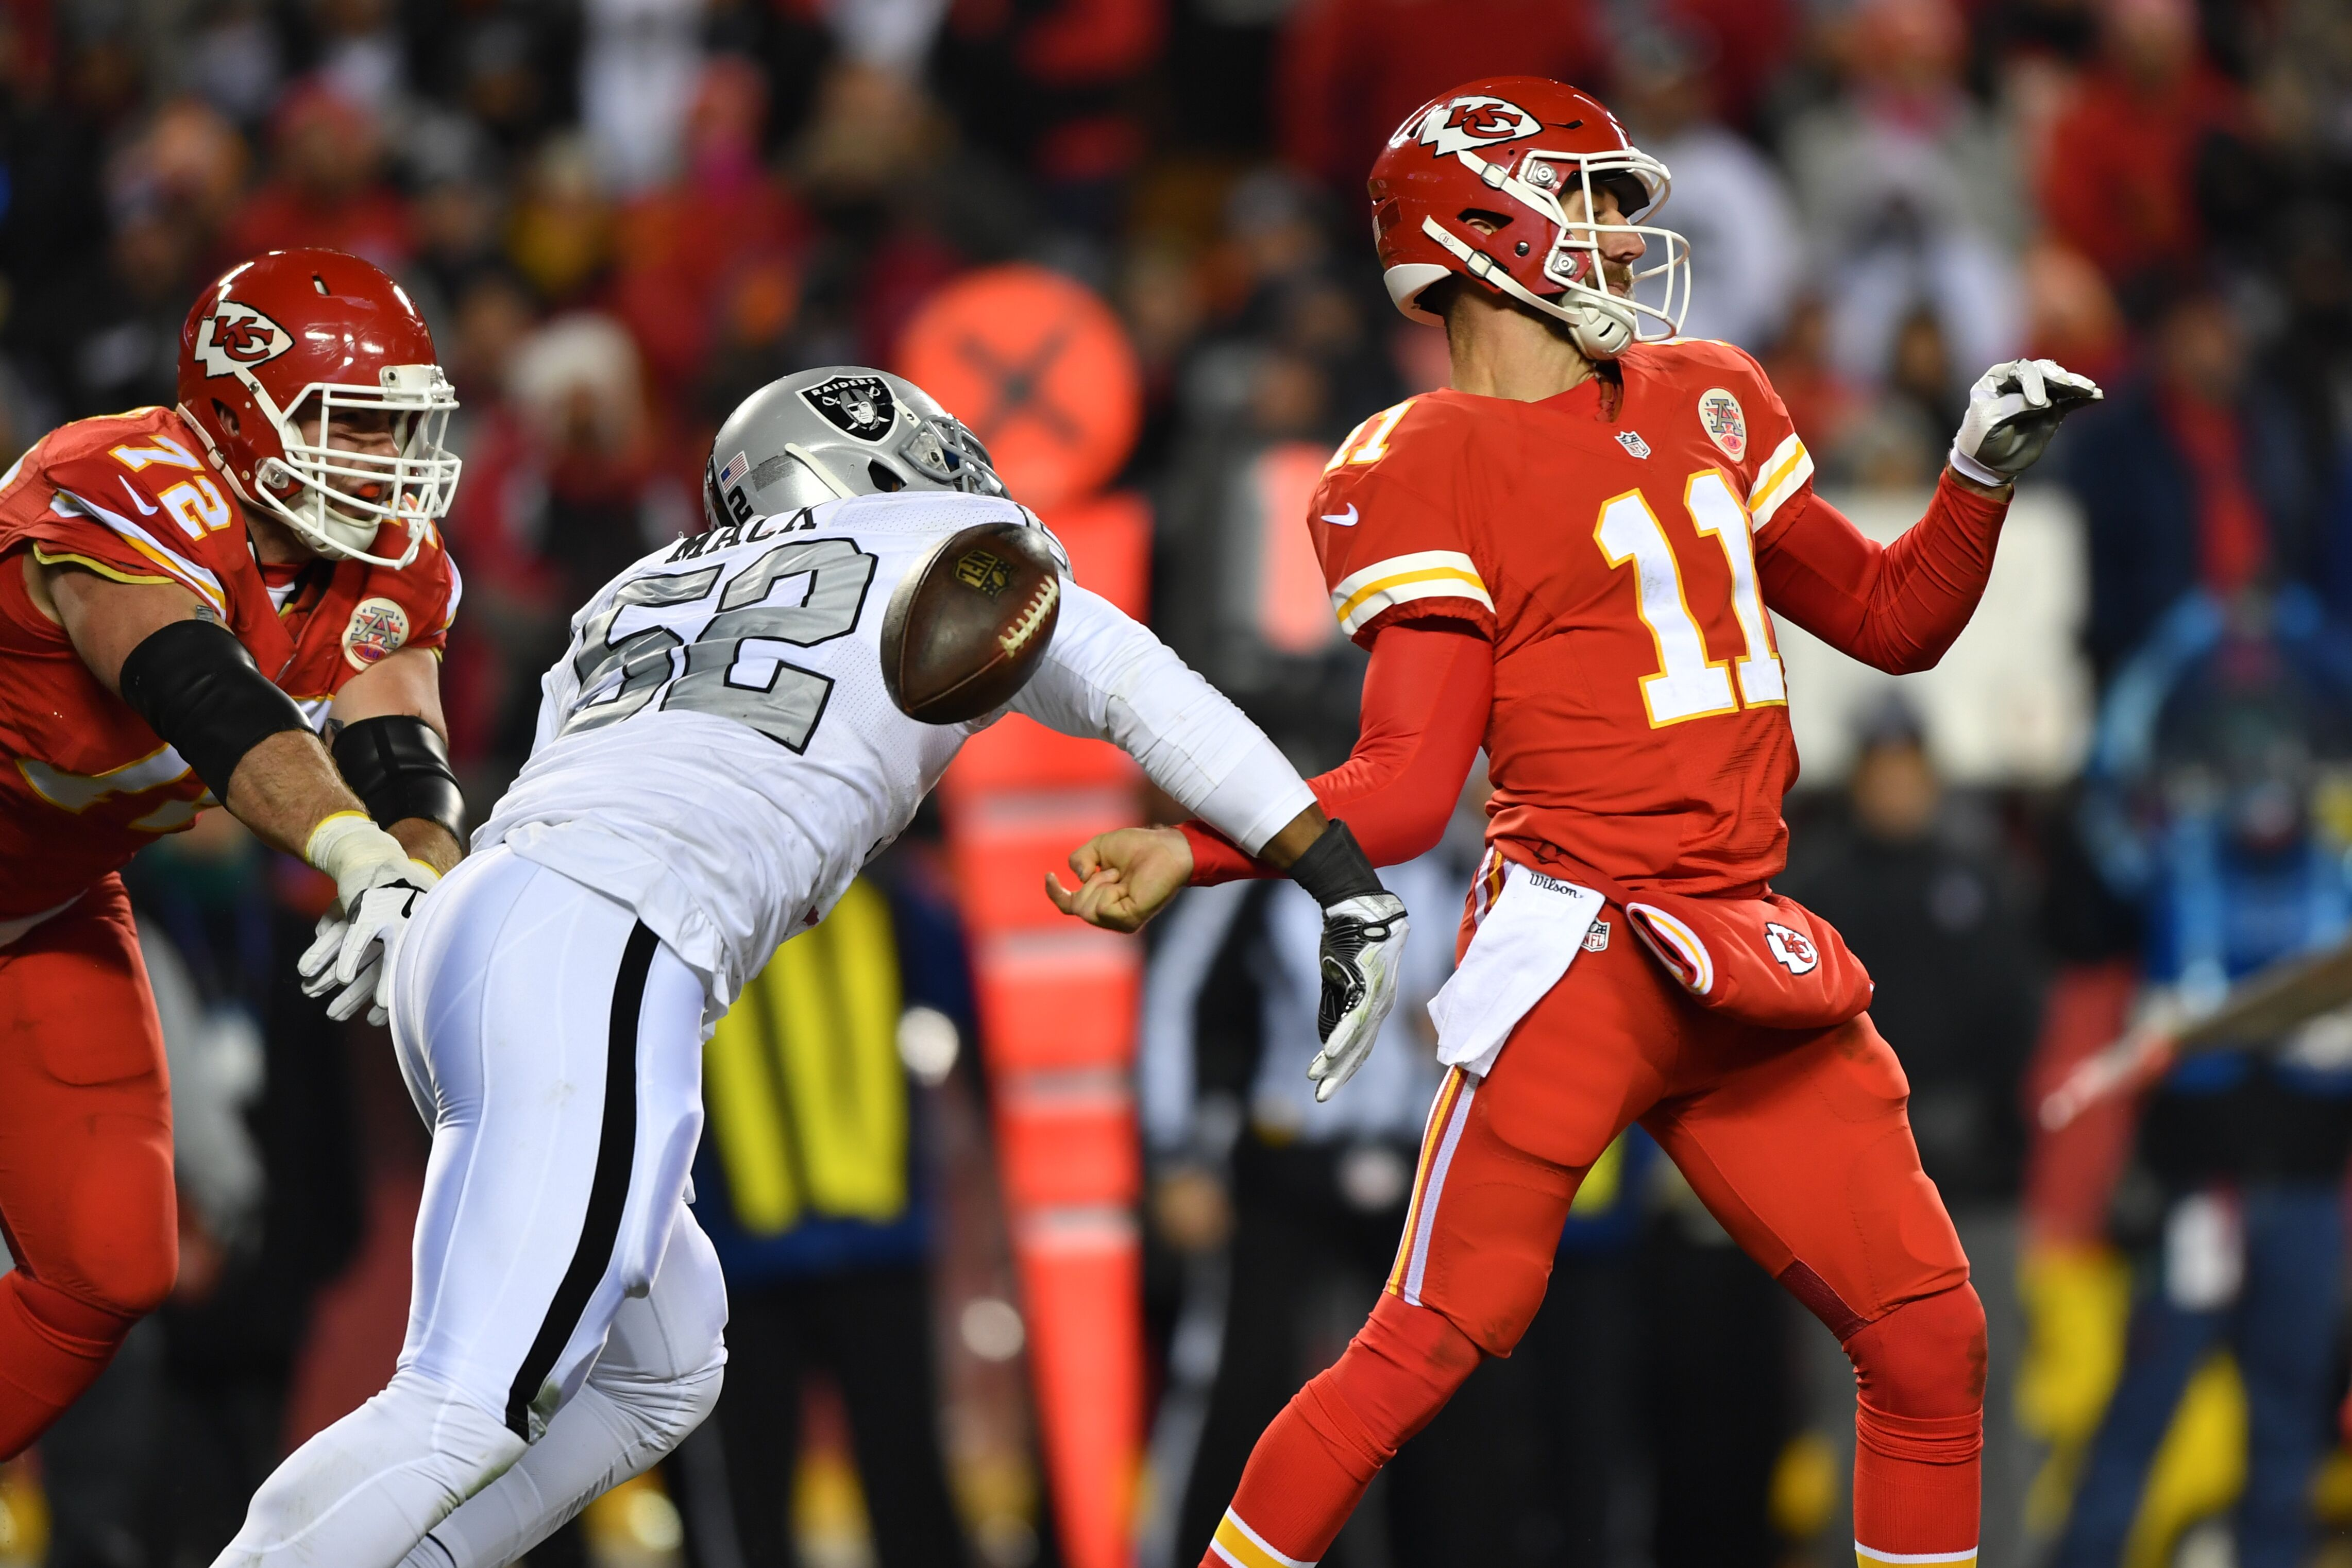 Oakland Raiders 5 keys to victory vs Kansas City Chiefs